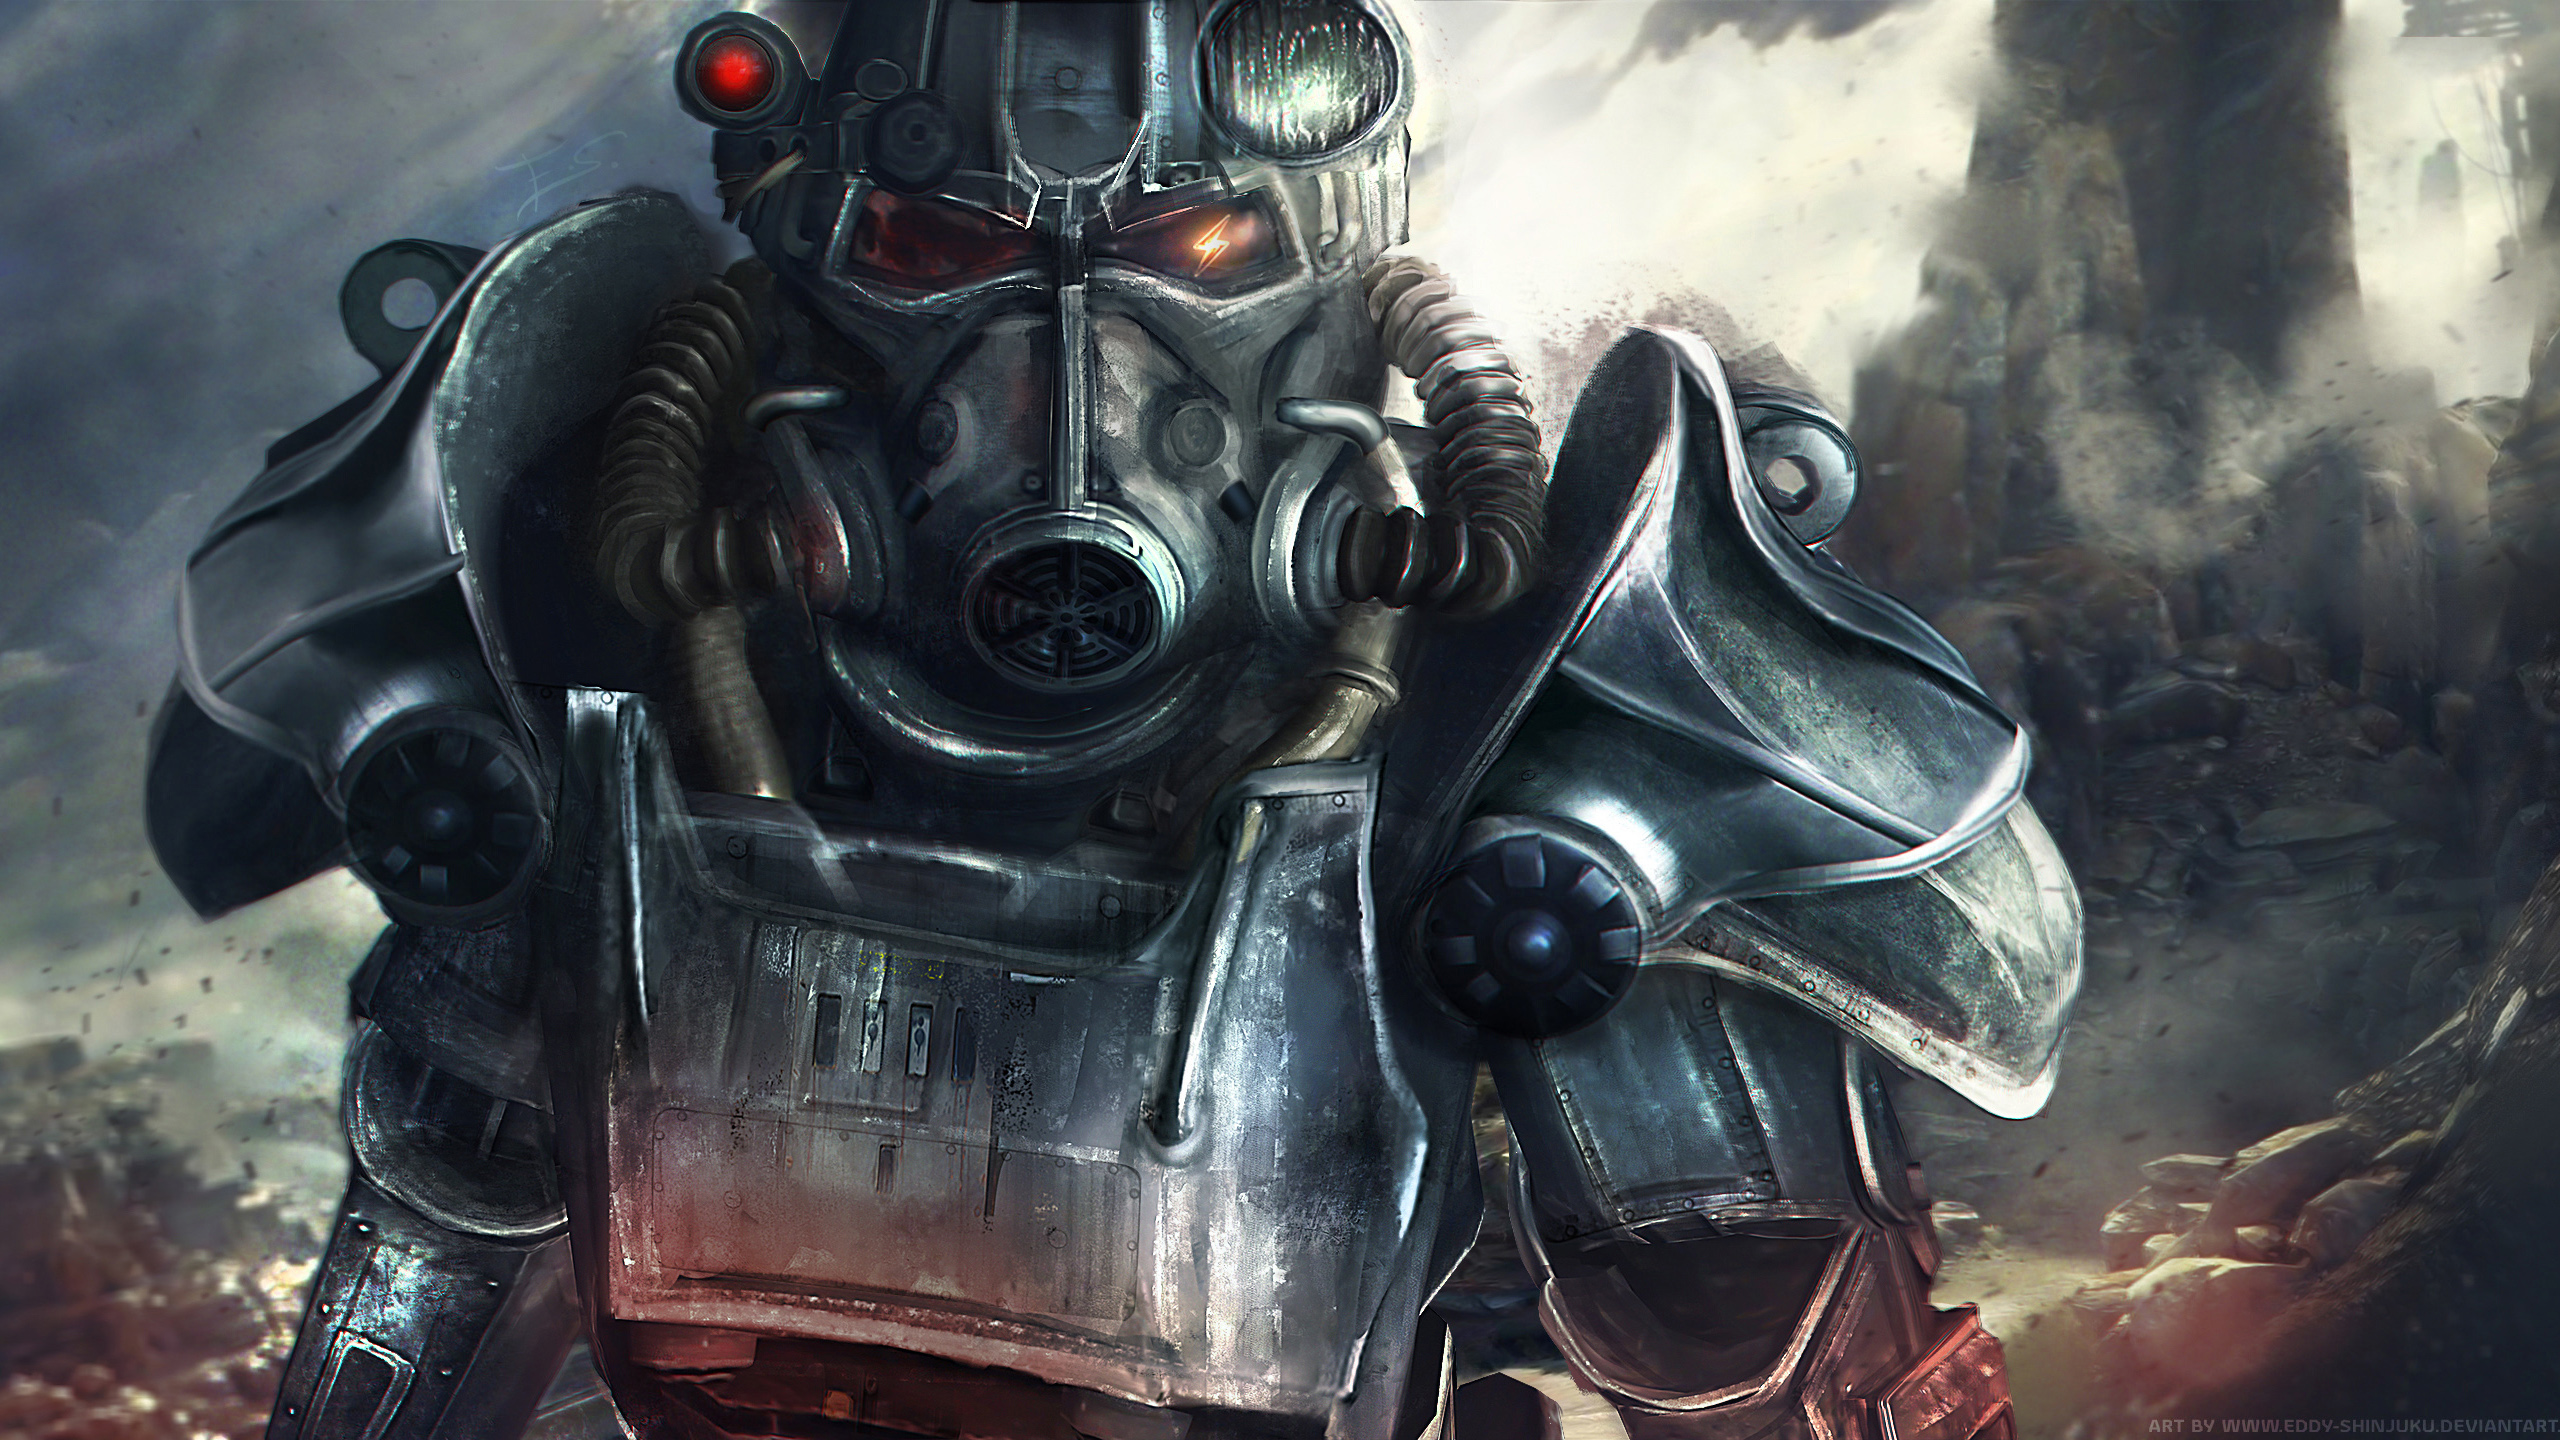 Fallout 4 NCR Ranger Wallpapers HD Wallpapers 2560x1440